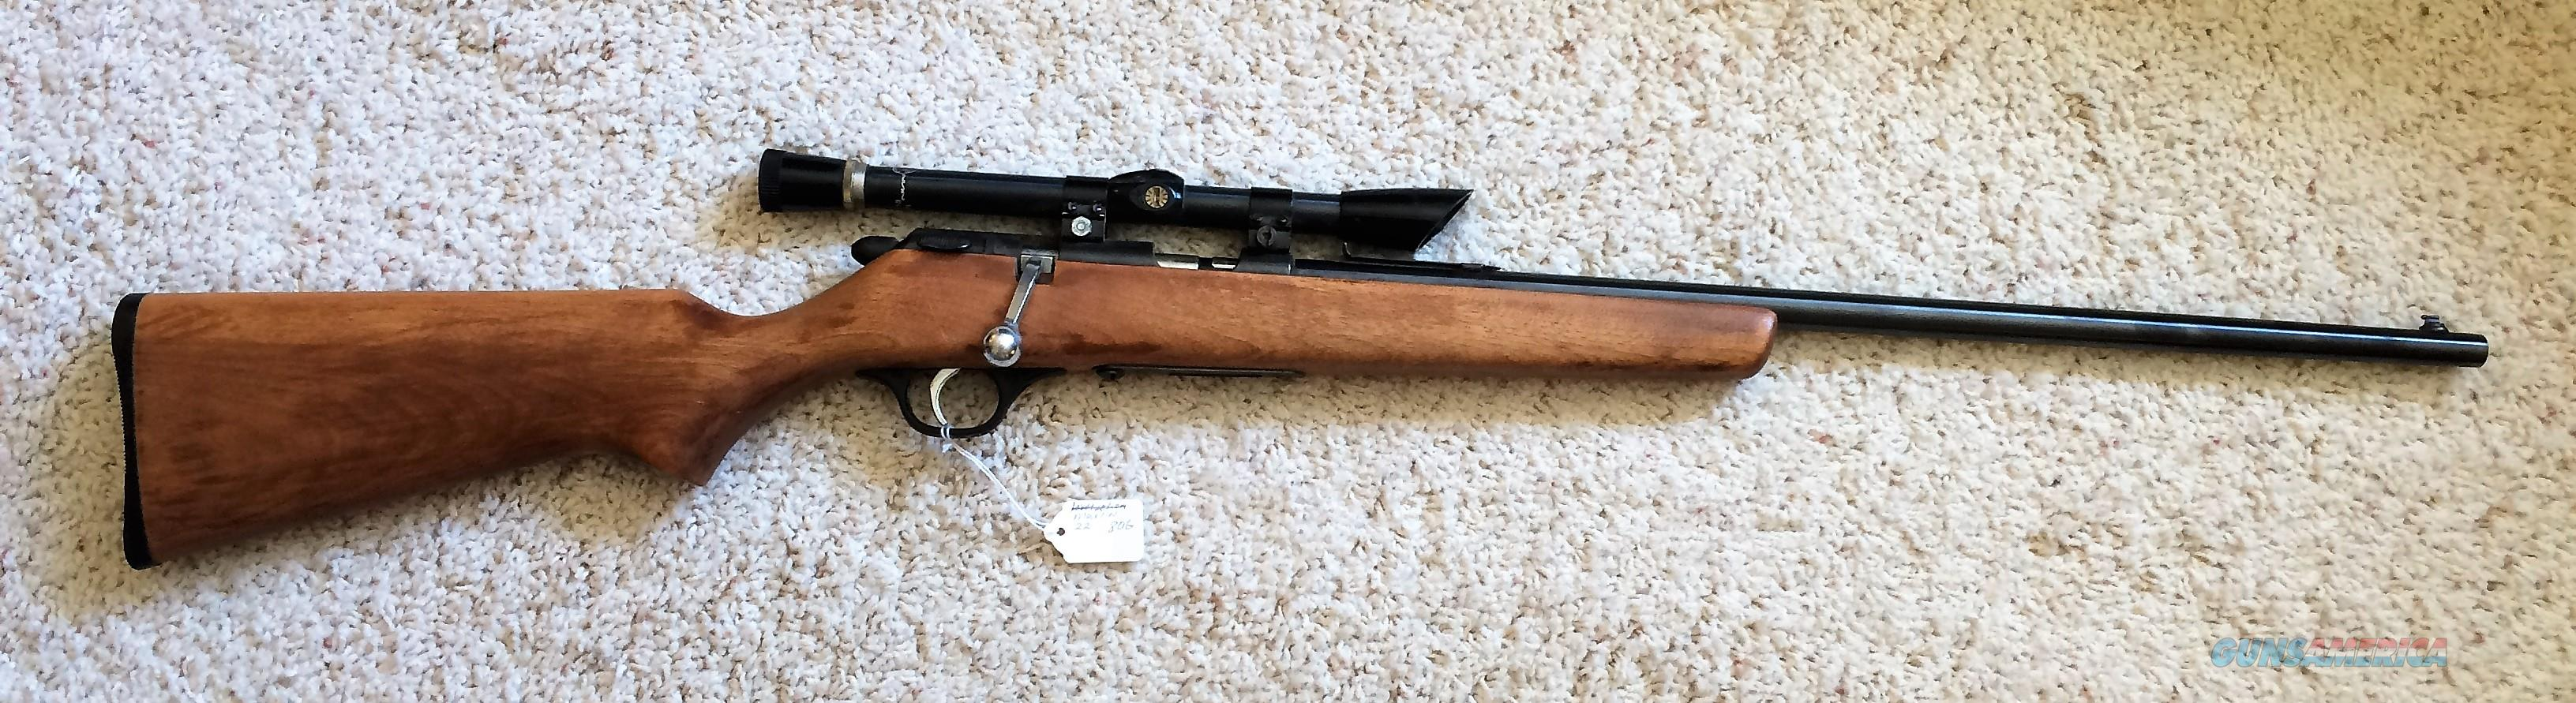 marlin model 80g 22 bolt action rifle for sale